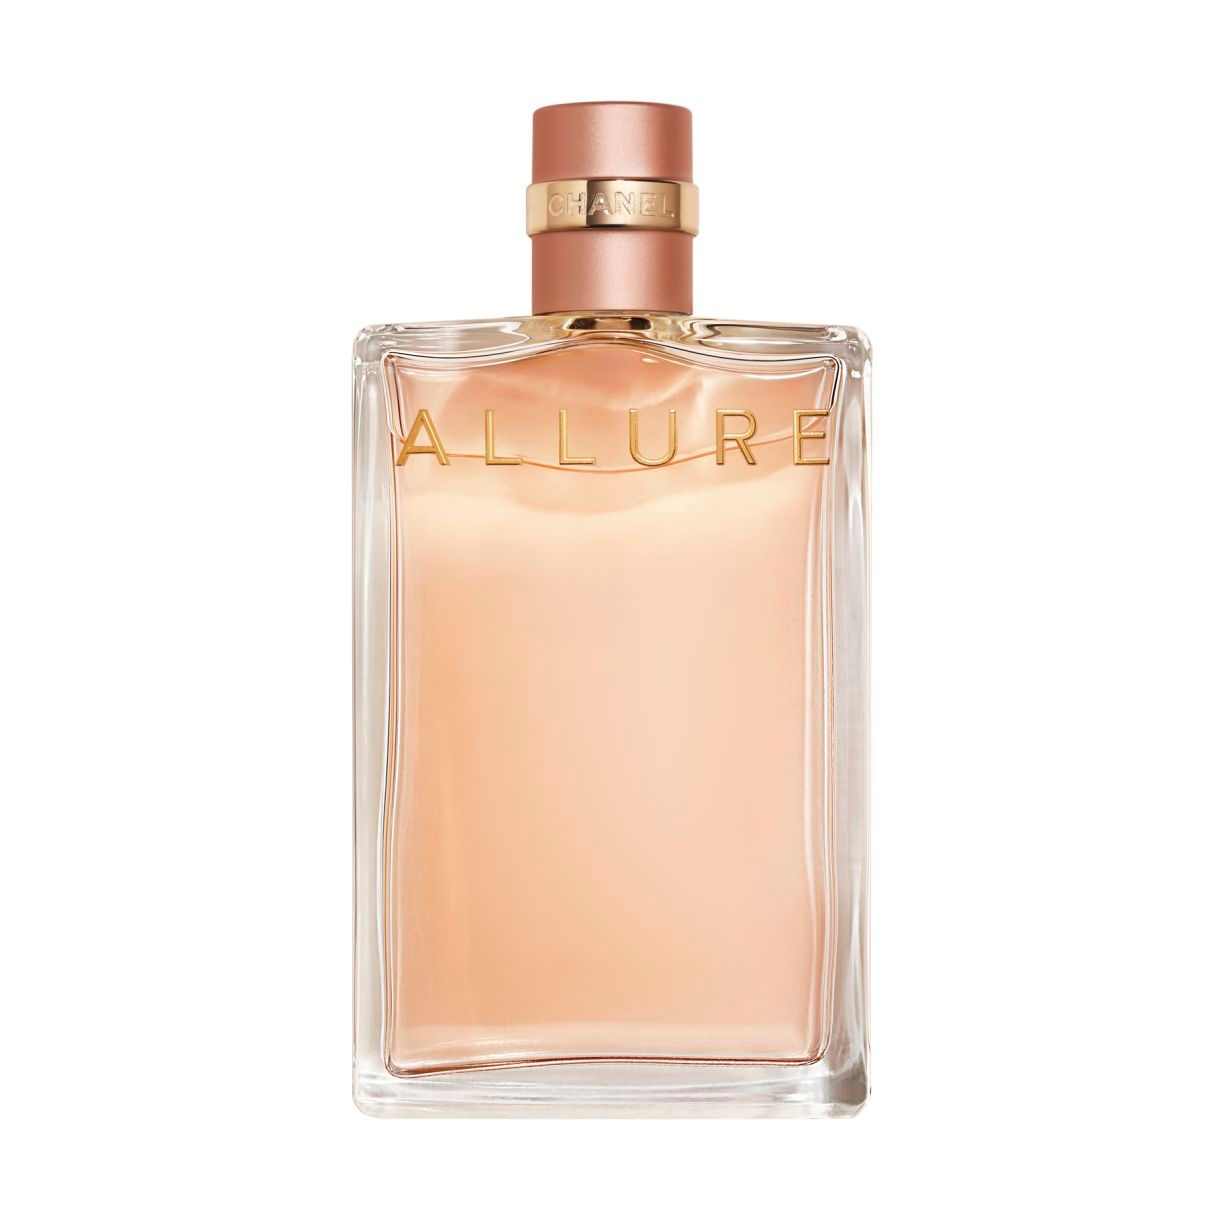 ALLURE EAU DE PARFUM SPRAY 100ml